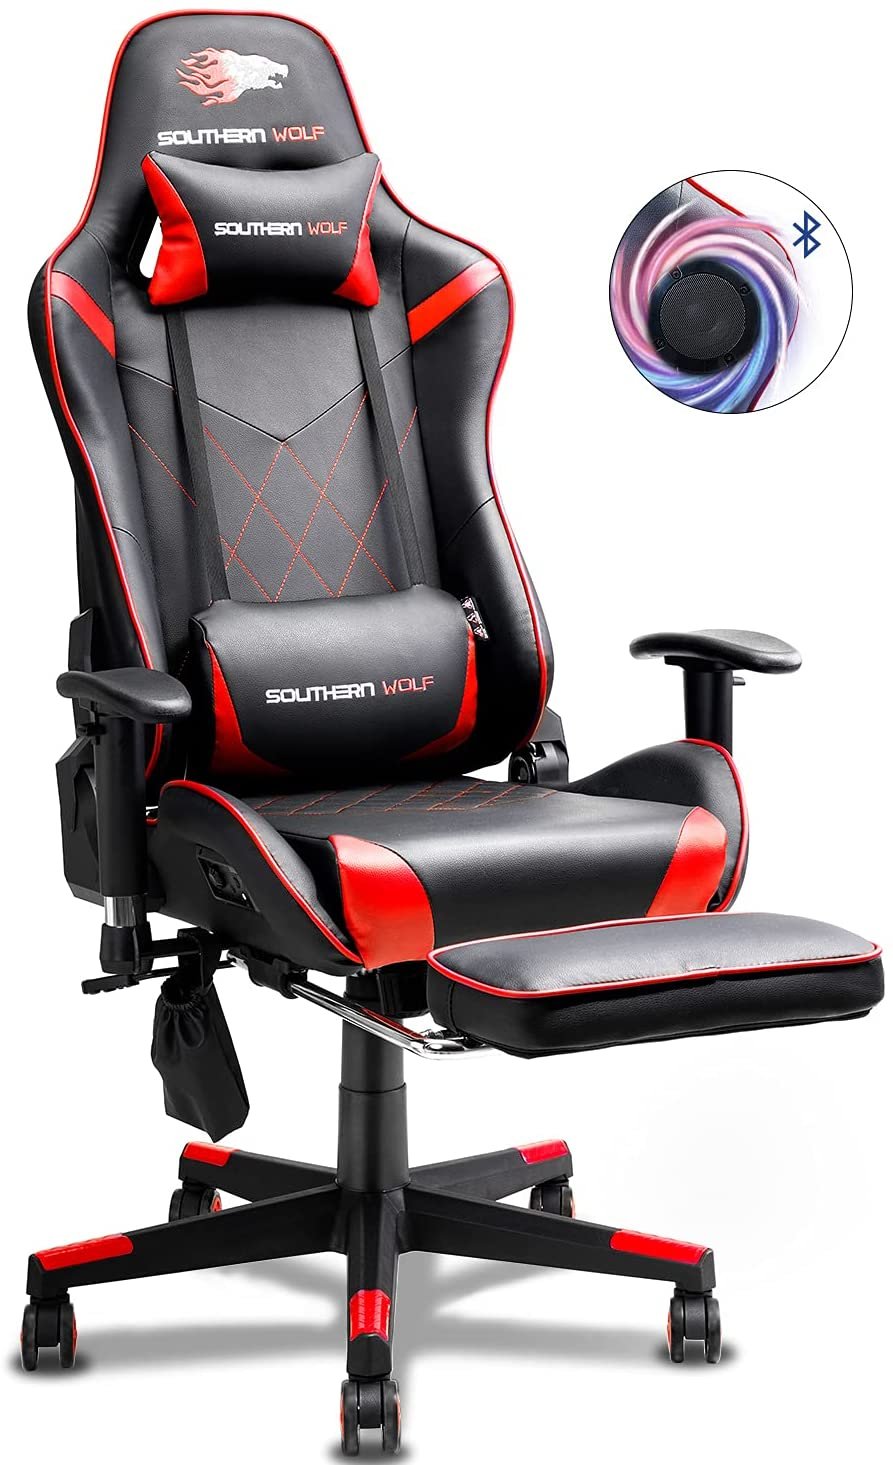 SOUTHERN-WOLF-Gaming-Chair